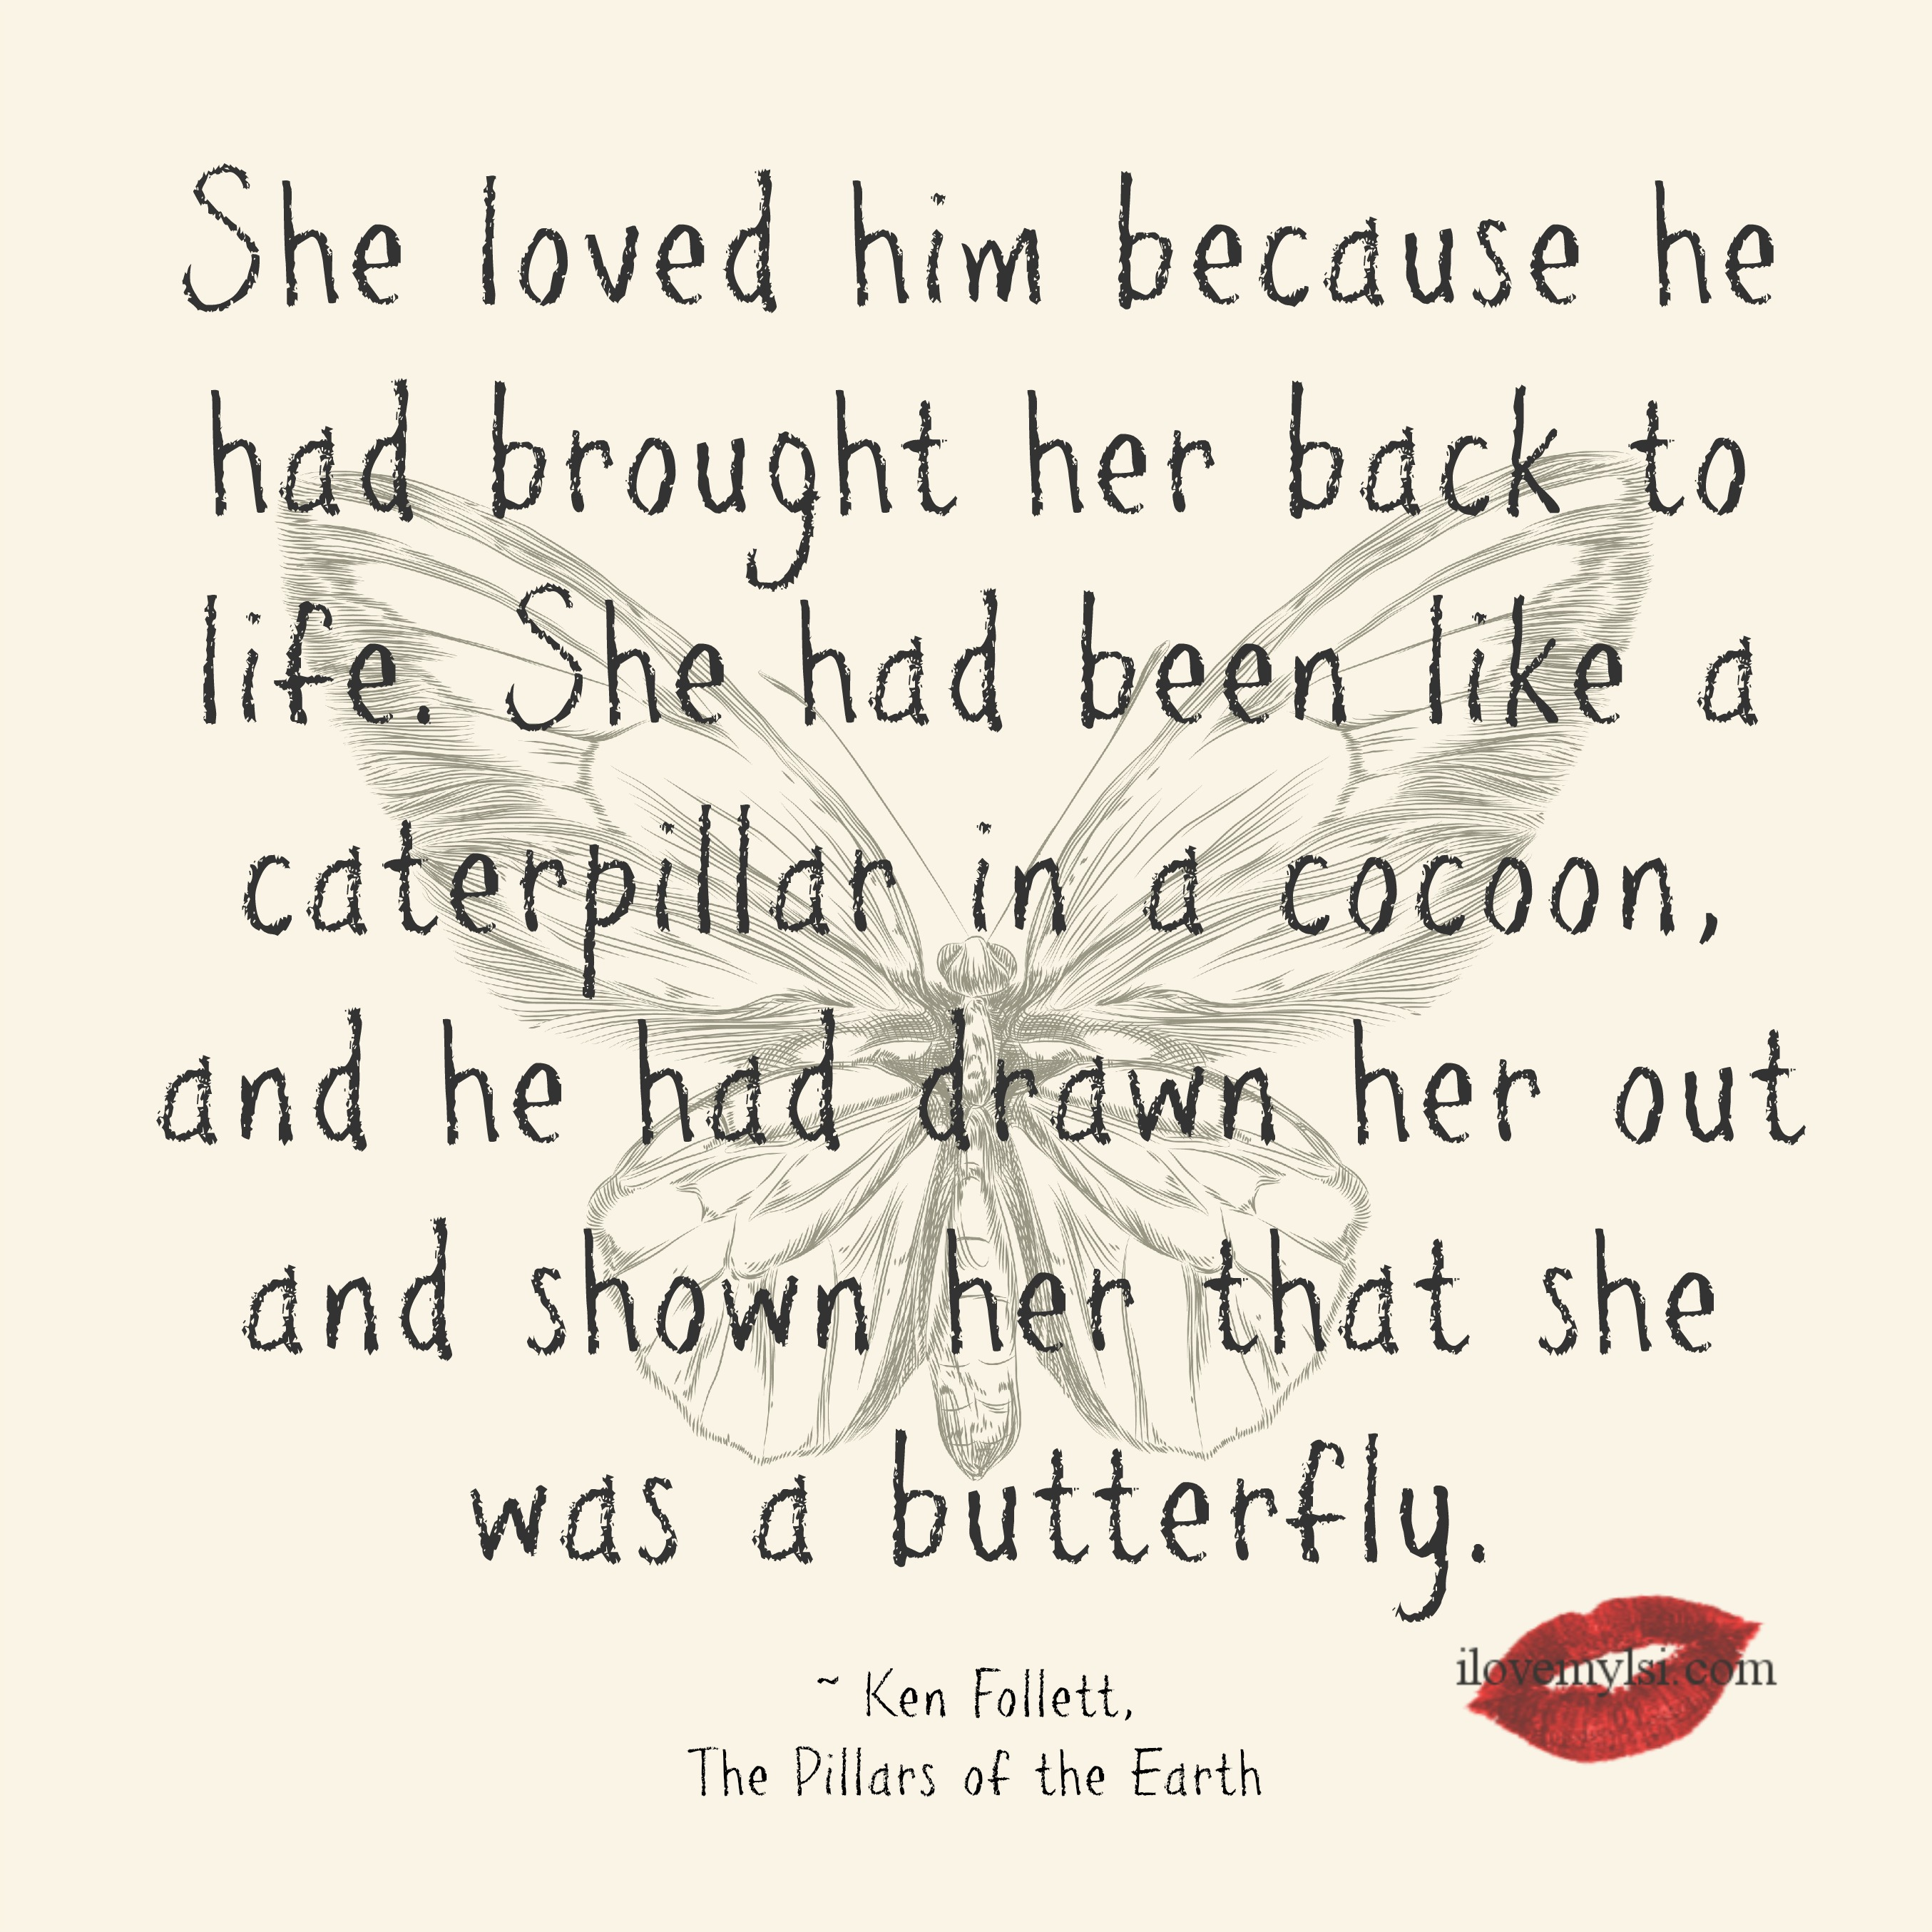 Kenneth Love Quotes: The 25 Most Romantic Love Quotes You Will Ever Read